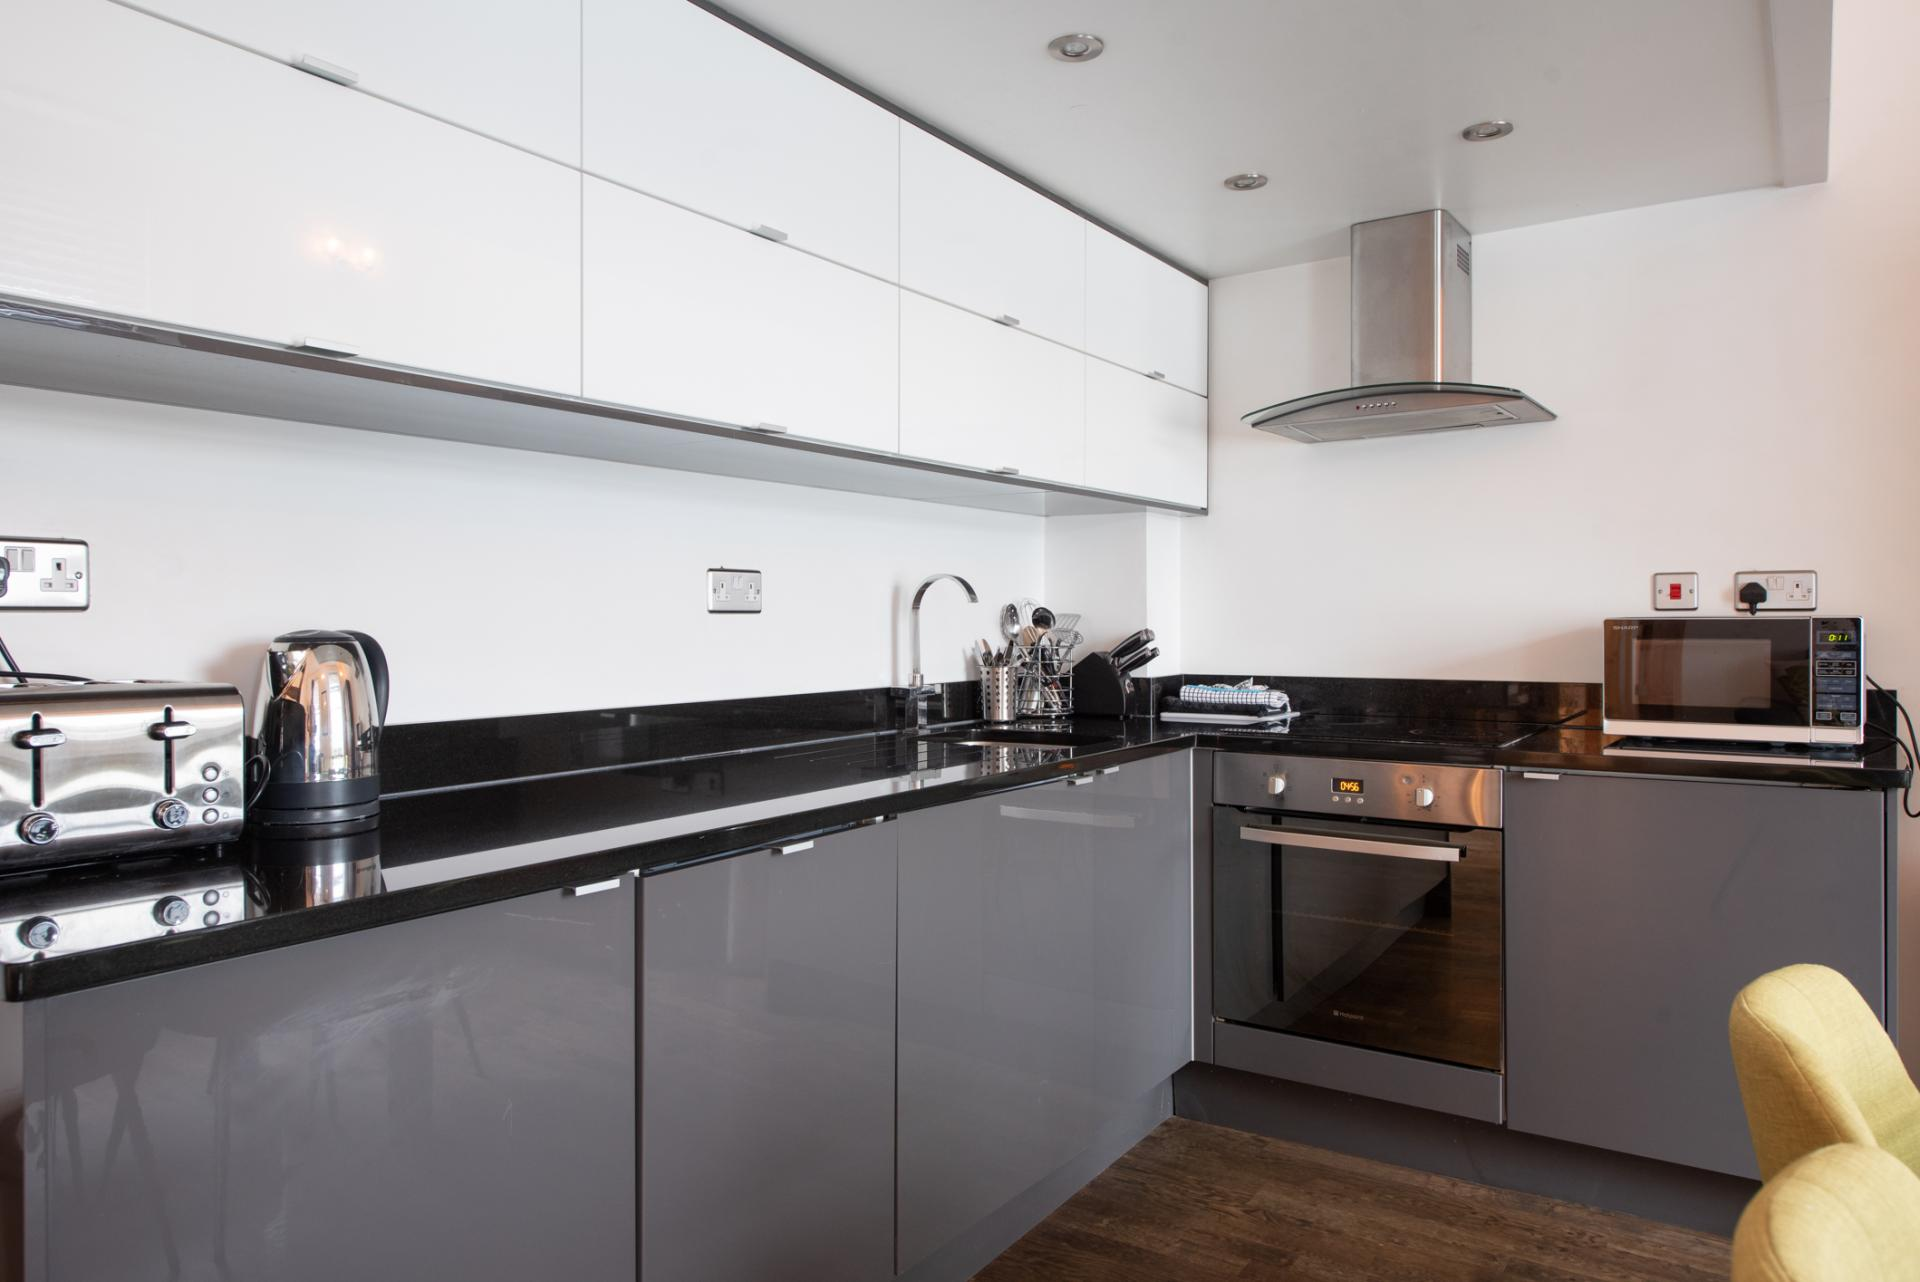 Kitchen at Chelsea Green Apartments, Chelsea, London - Citybase Apartments